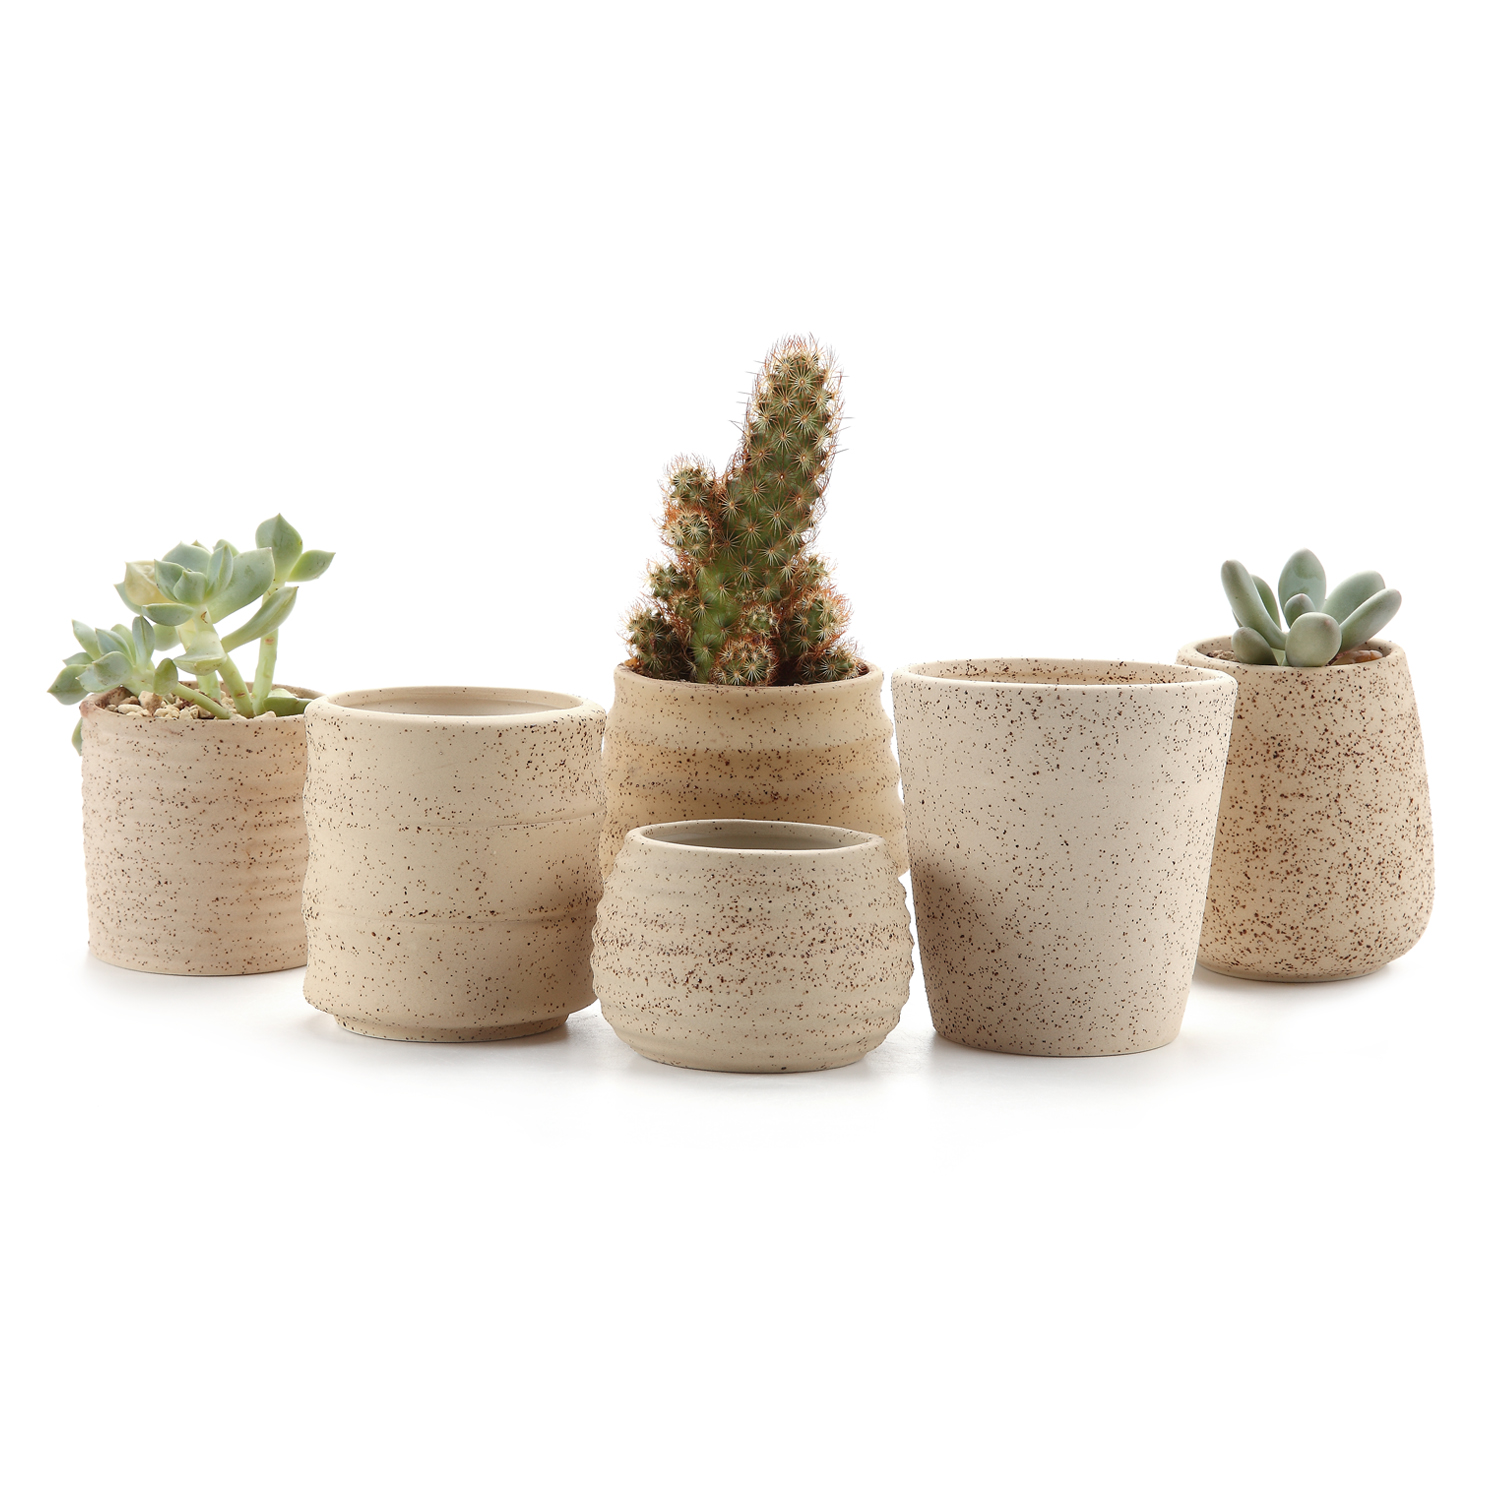 T4U Clay Stripe Oblate Shape Succulent Planter Plant Pot Cactus Maceta Bonsai Pots Flower Pot Container Plante 3 Inch